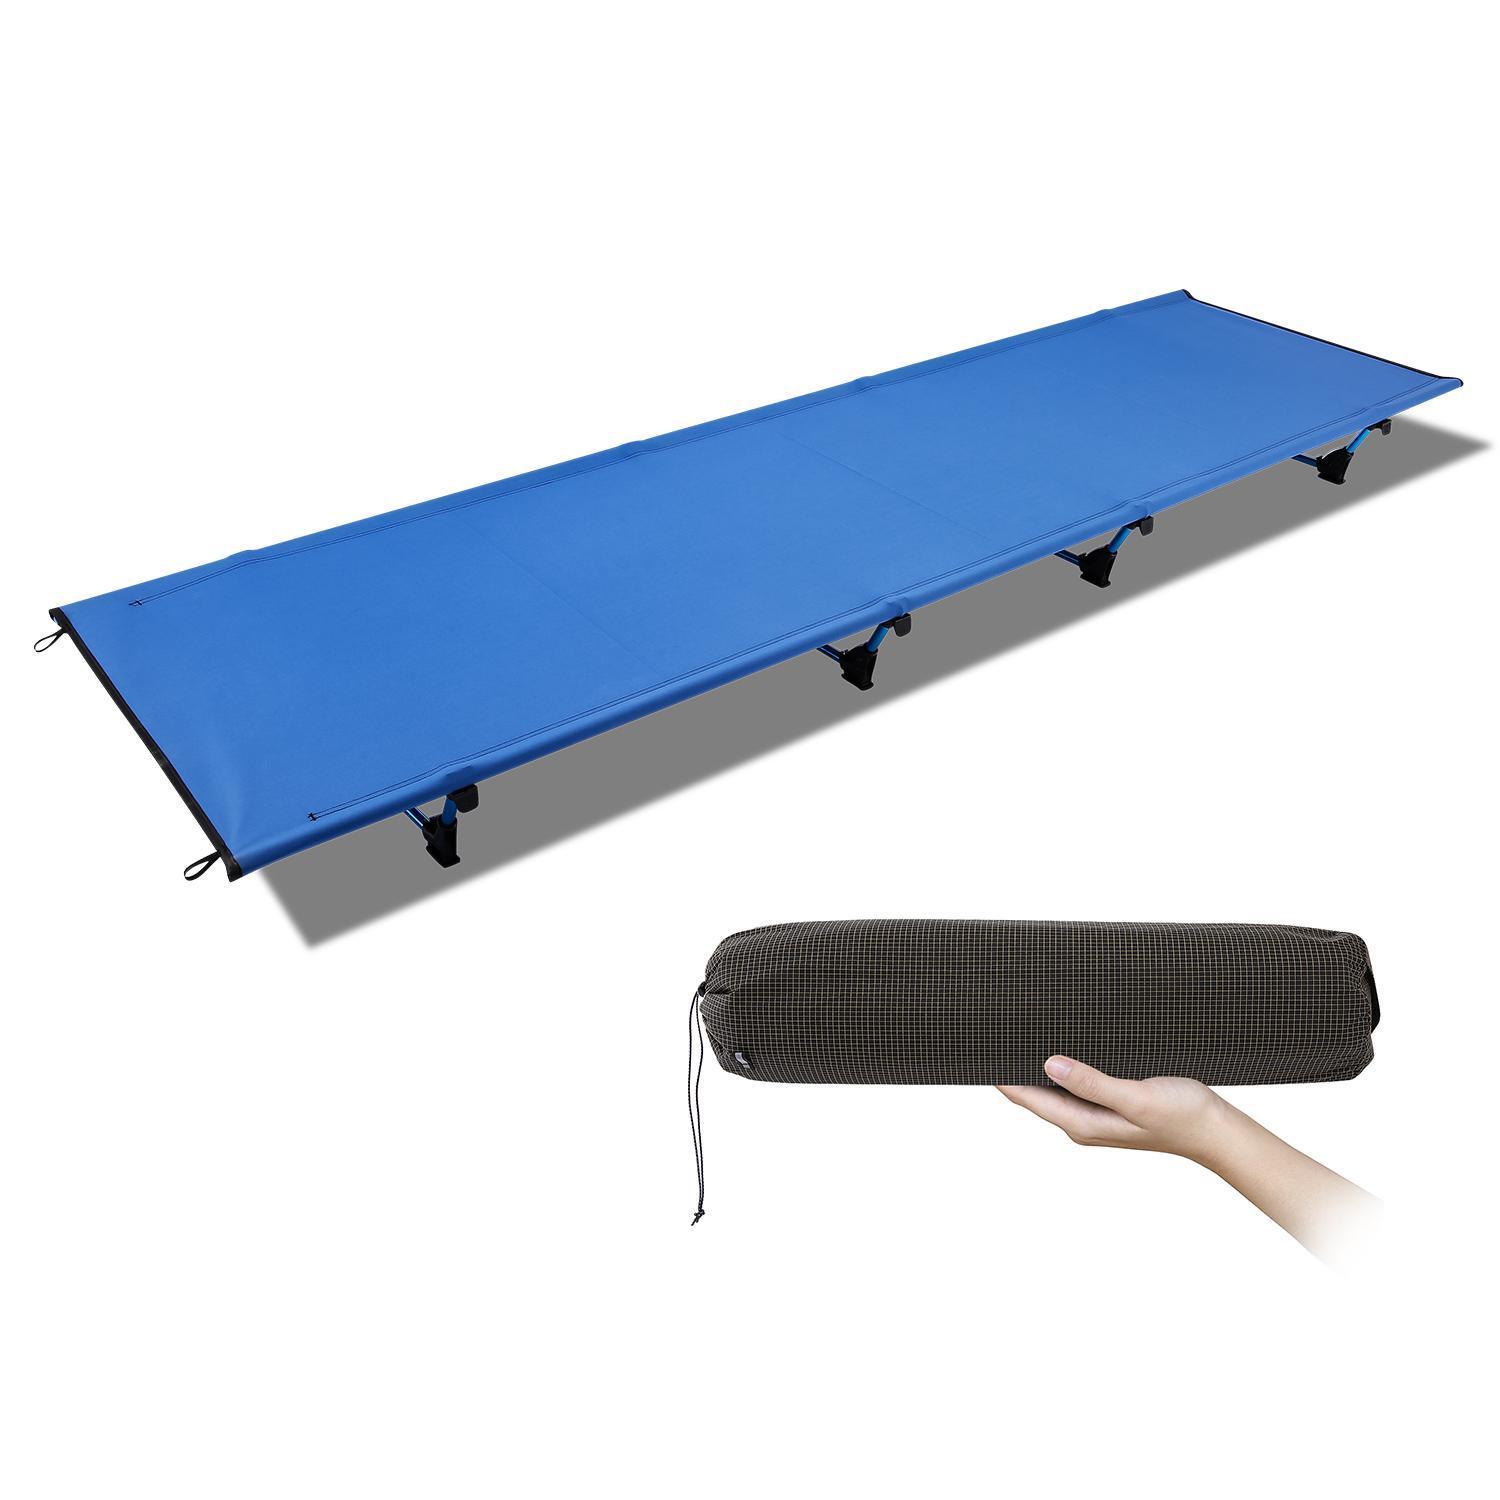 Ultralight Folding Camp Bed Hunting Camping Cot Breathable Waterproof HPPY by